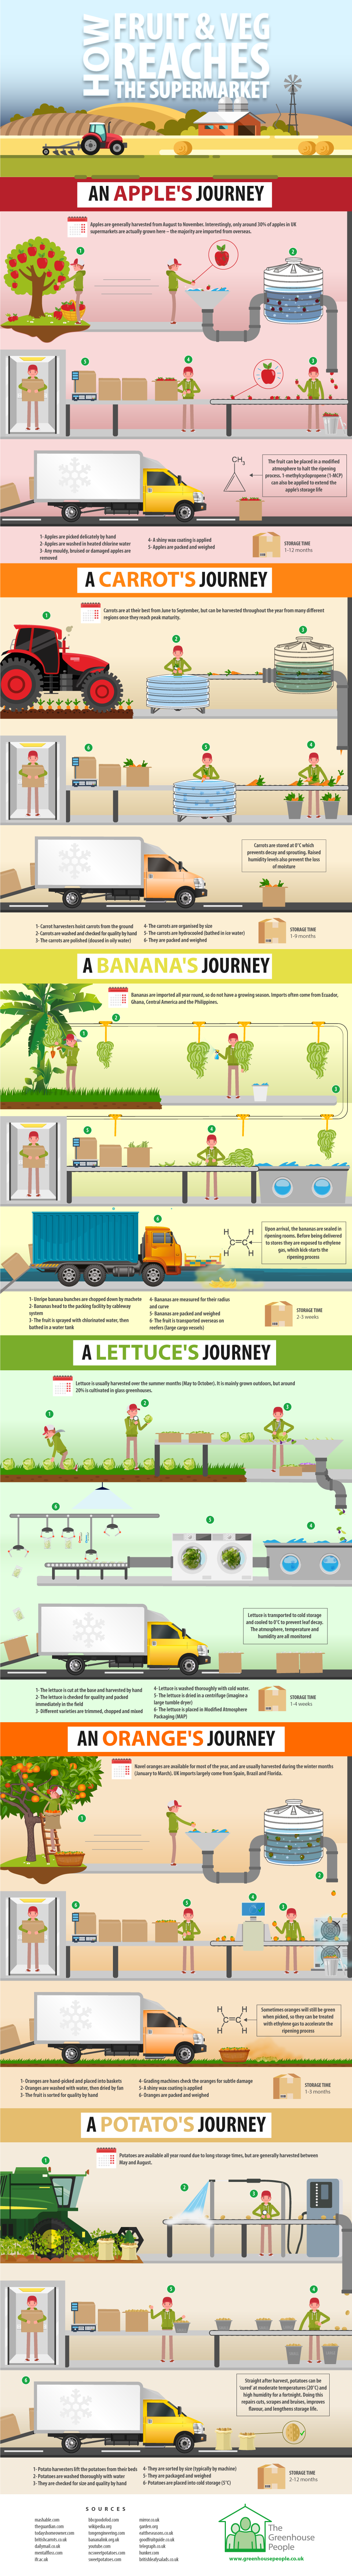 How food reaches supermarkets info graphic